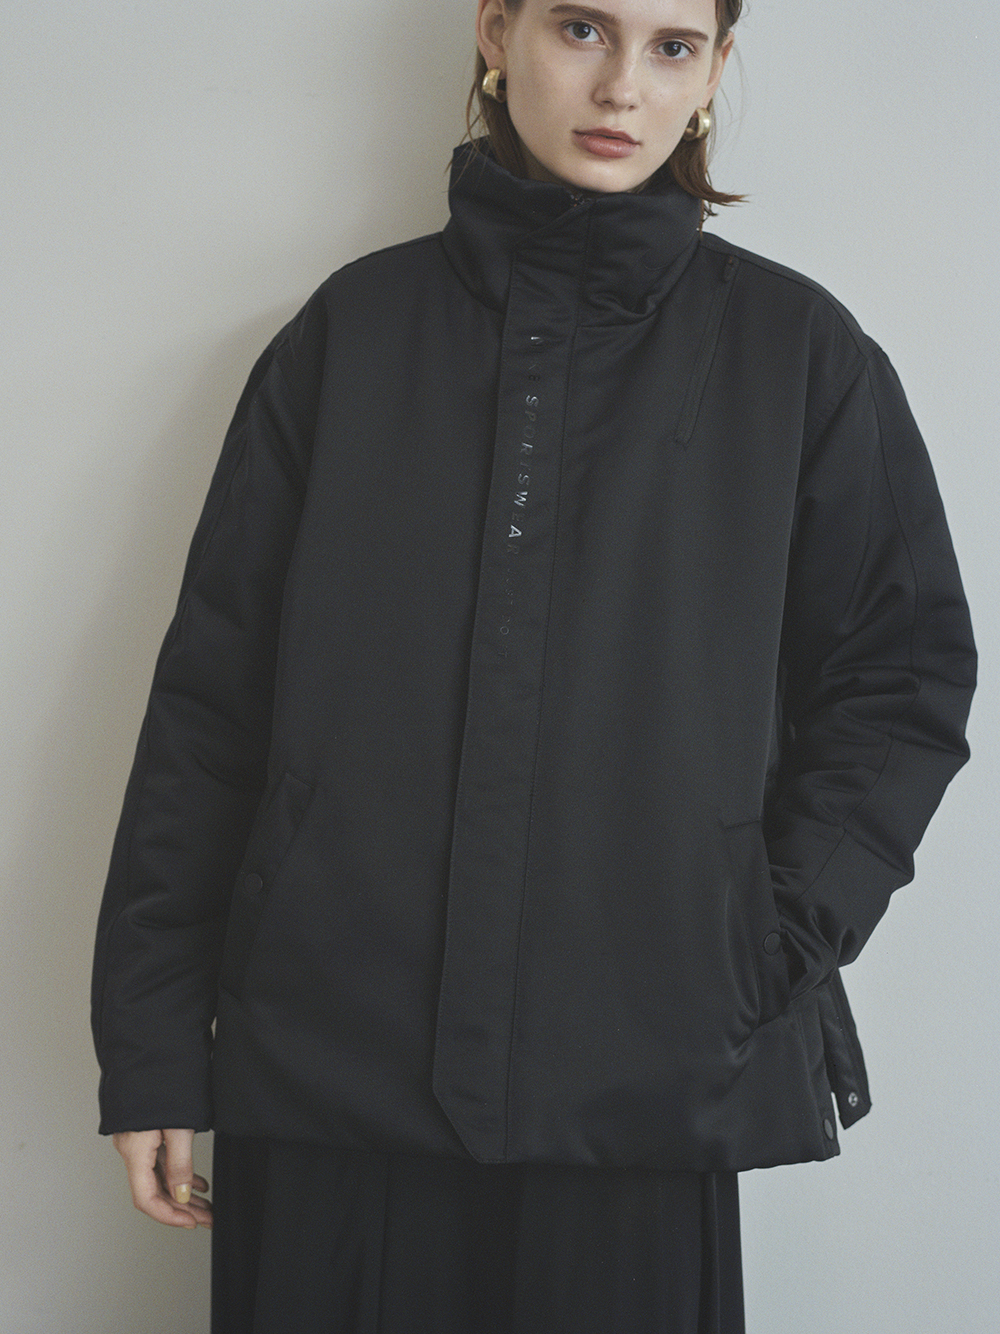 【NIKE meets emmi】AS W NSW SYN JKT TREND(BLK-S)